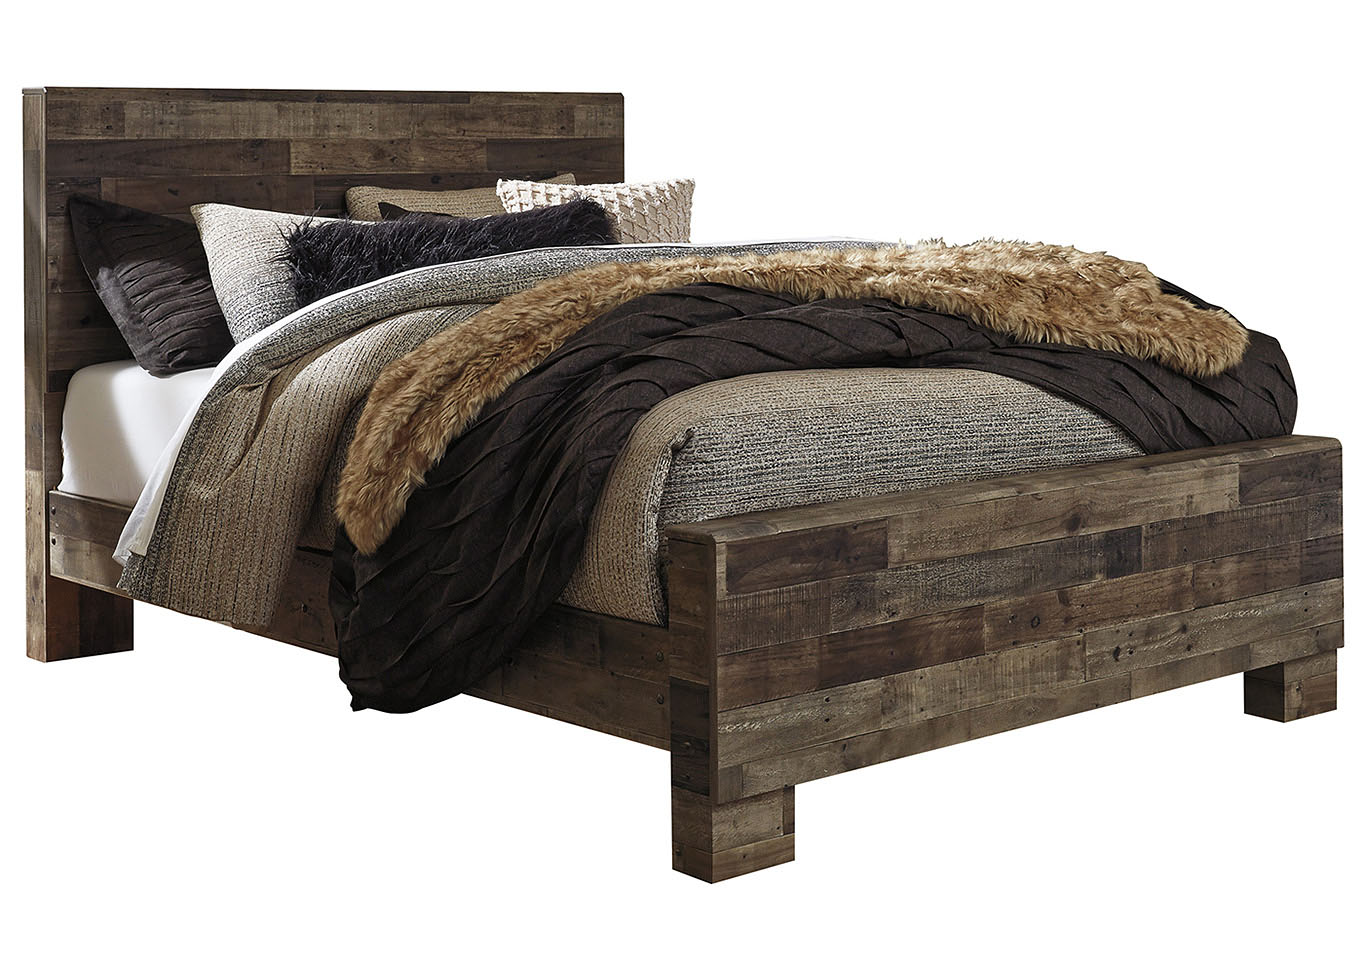 Derekson Queen Panel Bed,Benchcraft